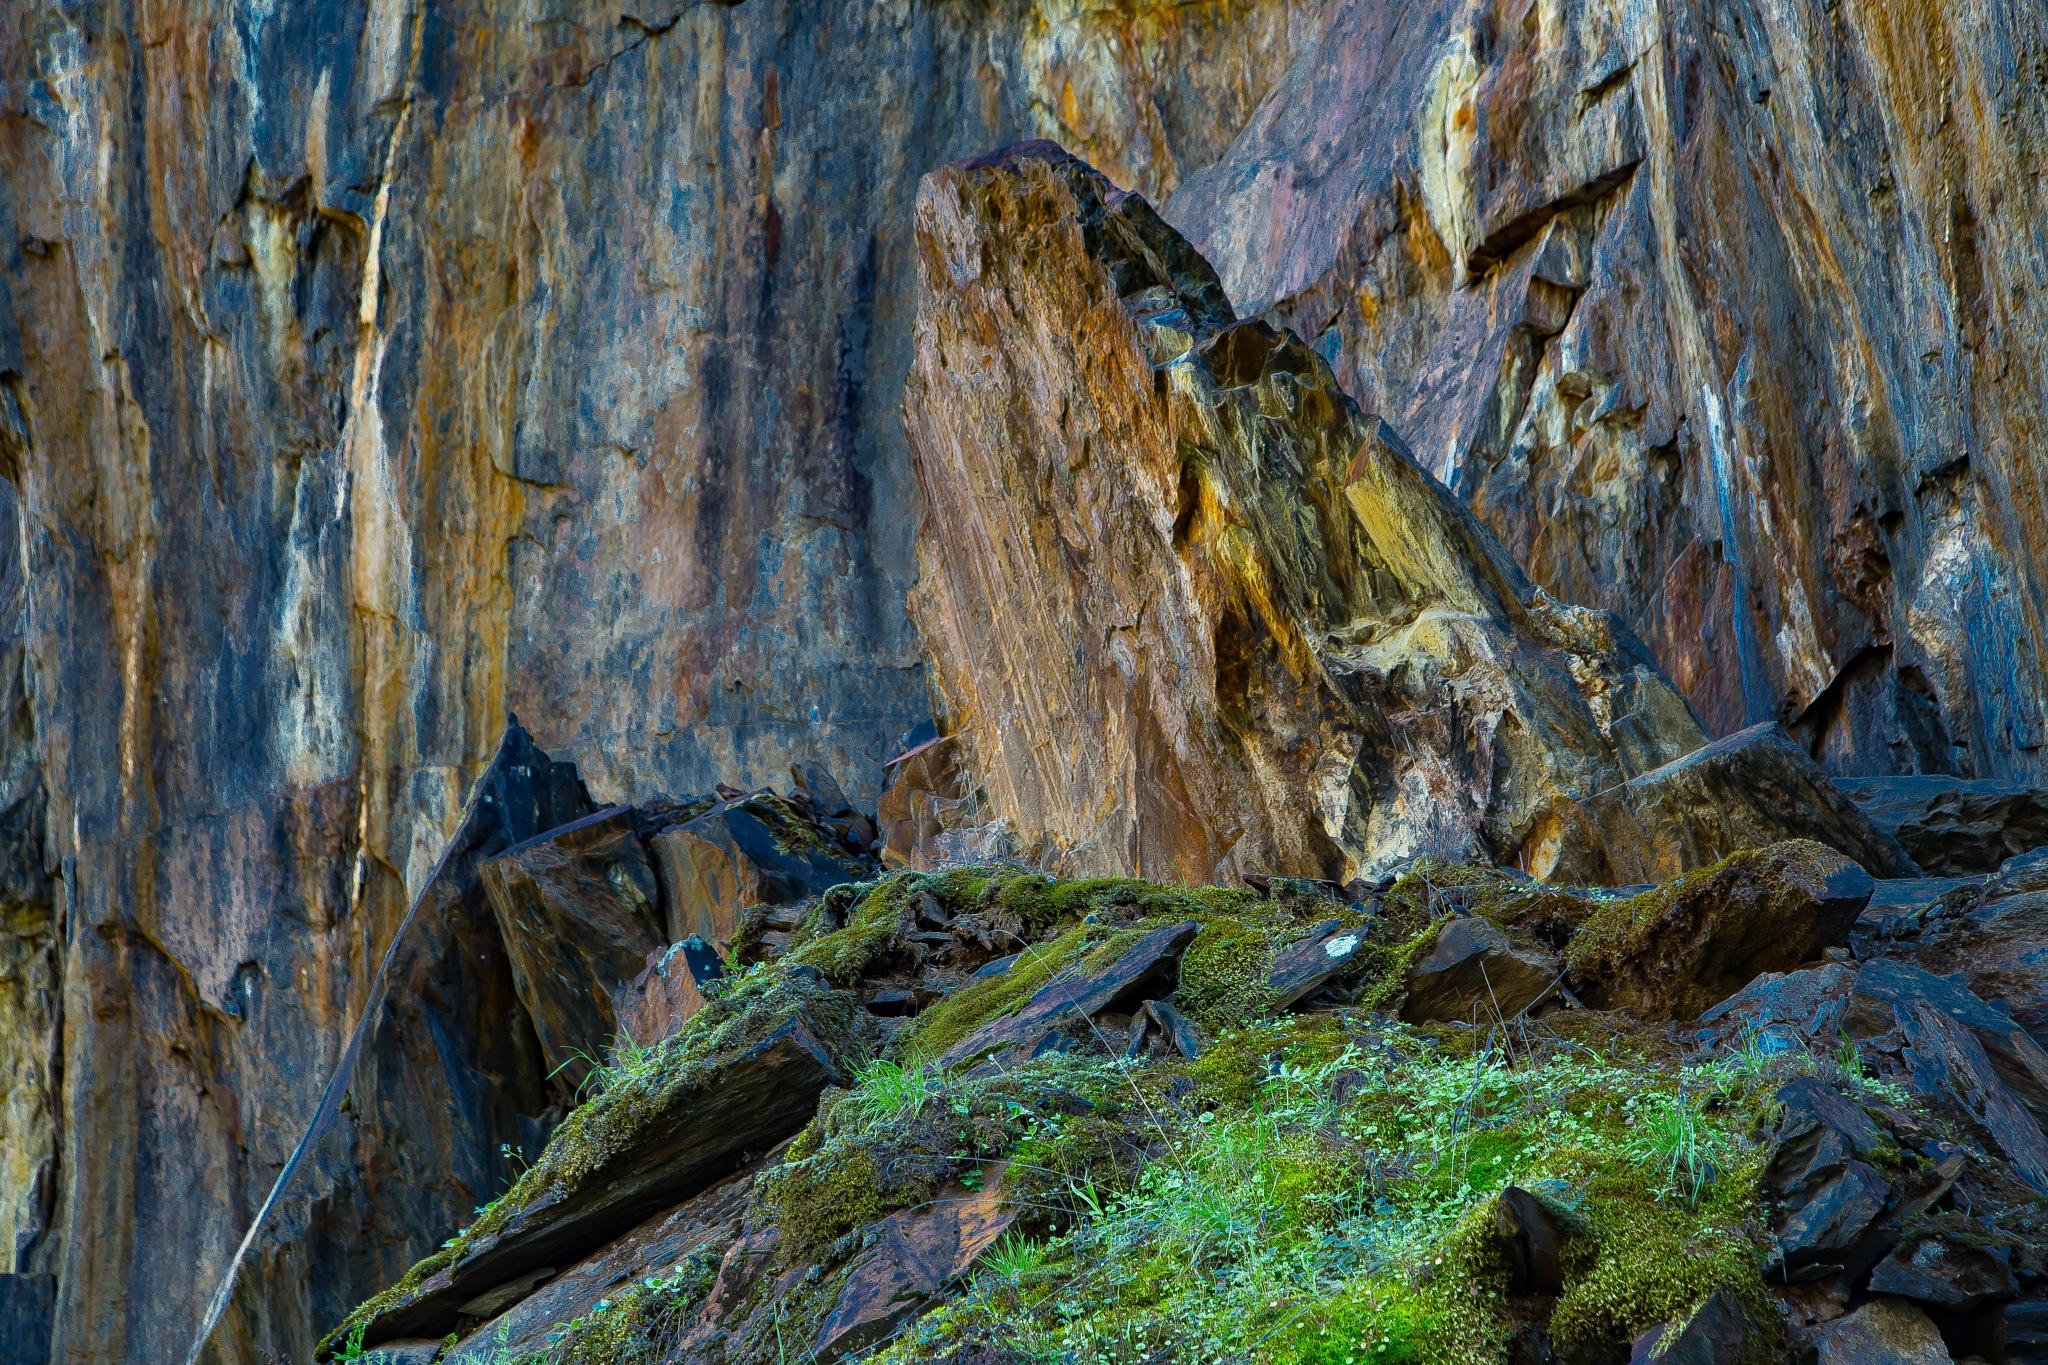 Yosemite, abstract composition by volkhard sturzbecher